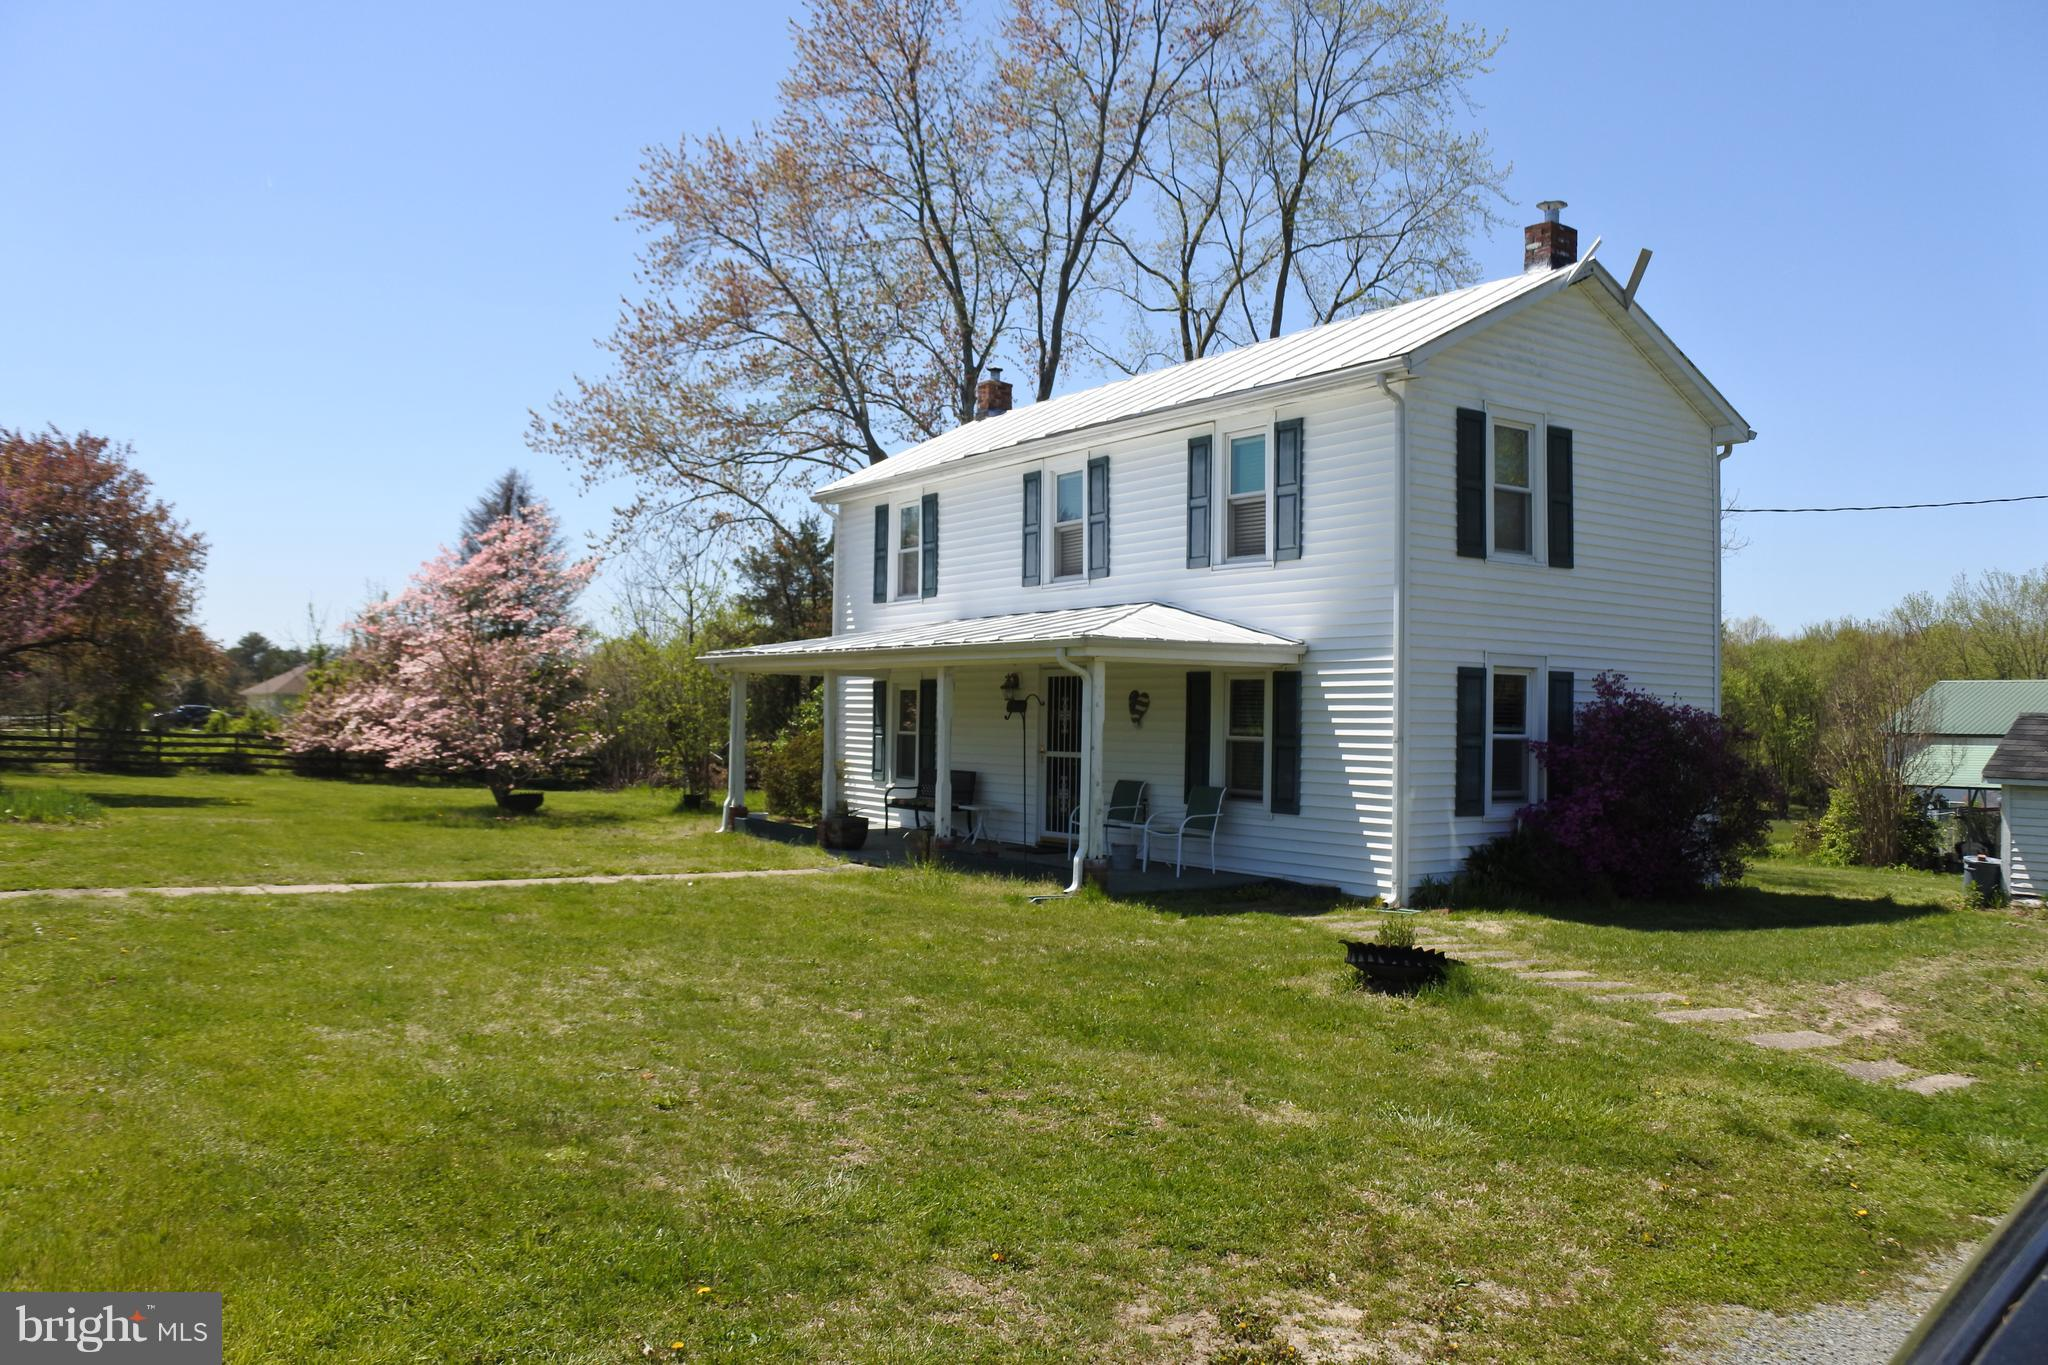 3454 ROCK RUN ROAD, GOLDVEIN, VA 22720